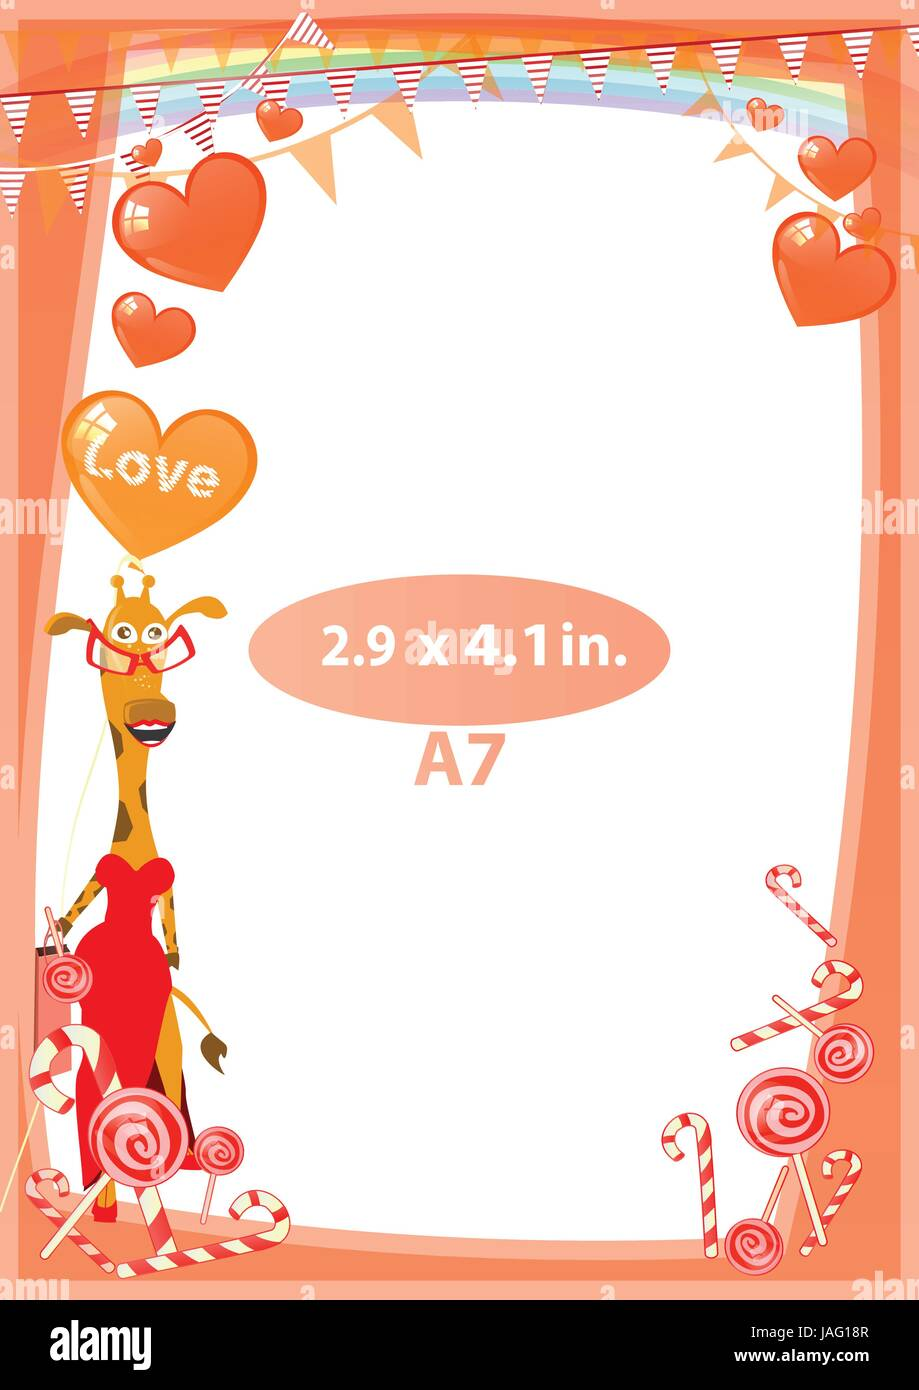 20aace03692b Photo The frame is red. Standard size in inches. A format. Vertical  orientation of the sheet. Illustration for your design. Giraffe in a red  dress amo